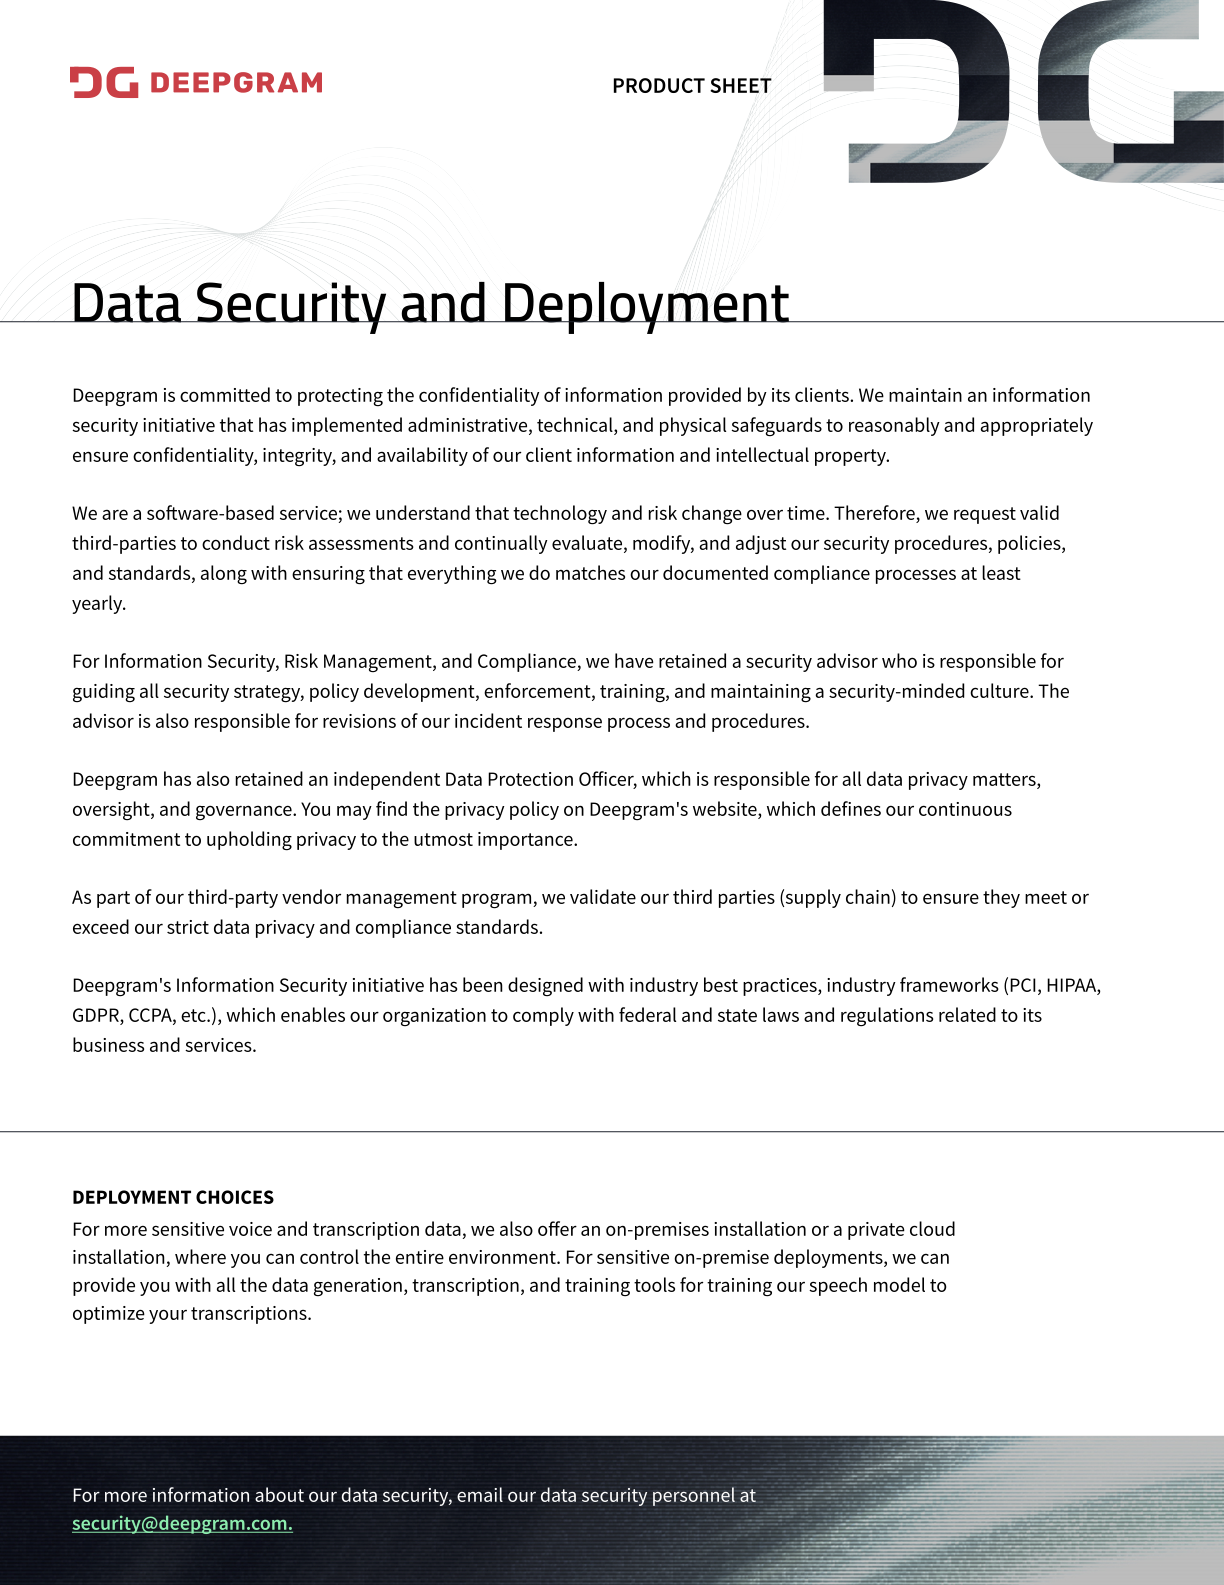 product-sheets-data-security-and-deployment-20210415